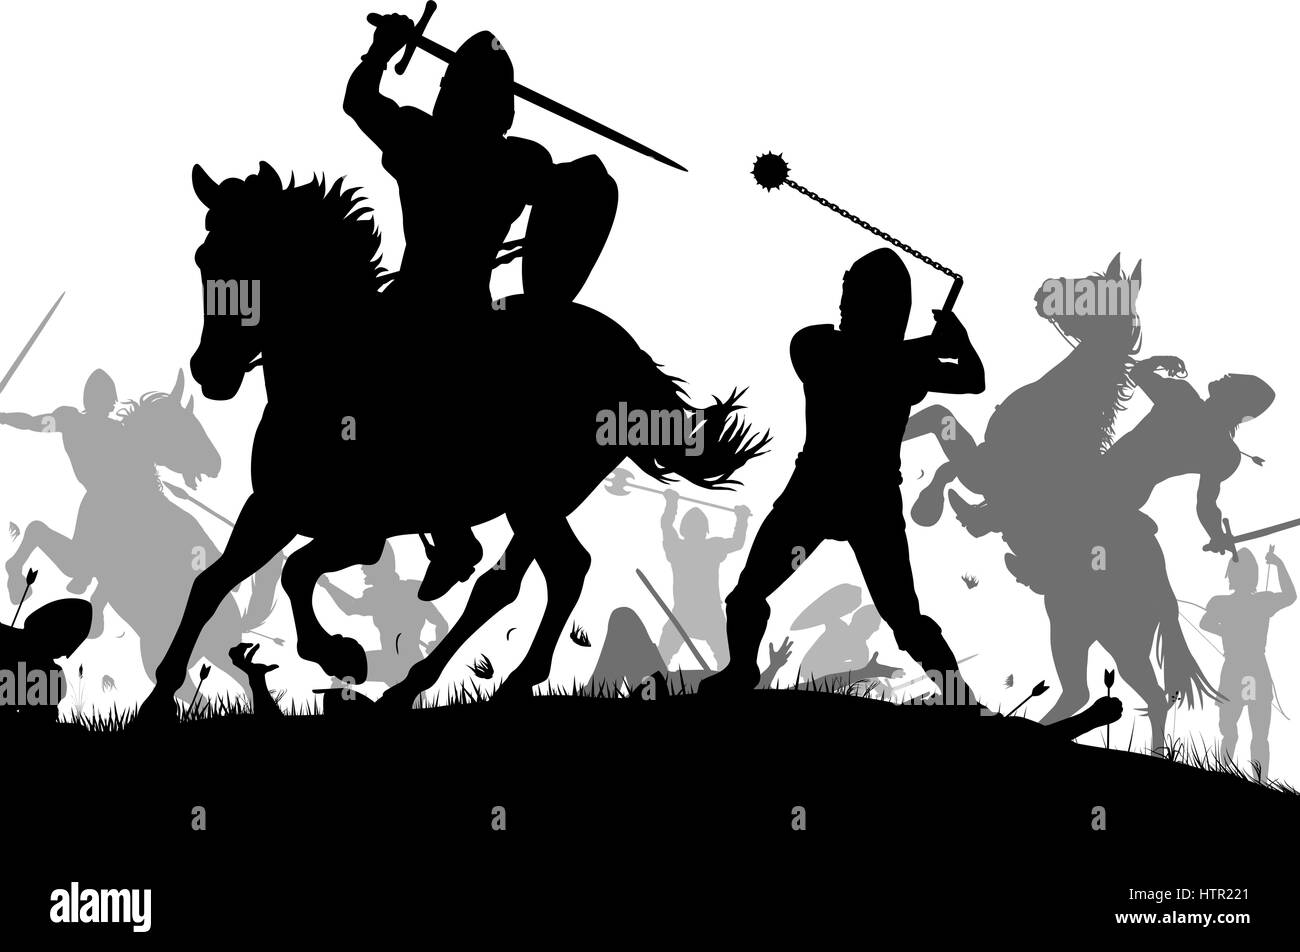 Vector silhouette illustration of a medieval battle scene with cavalry and infantry - Stock Vector